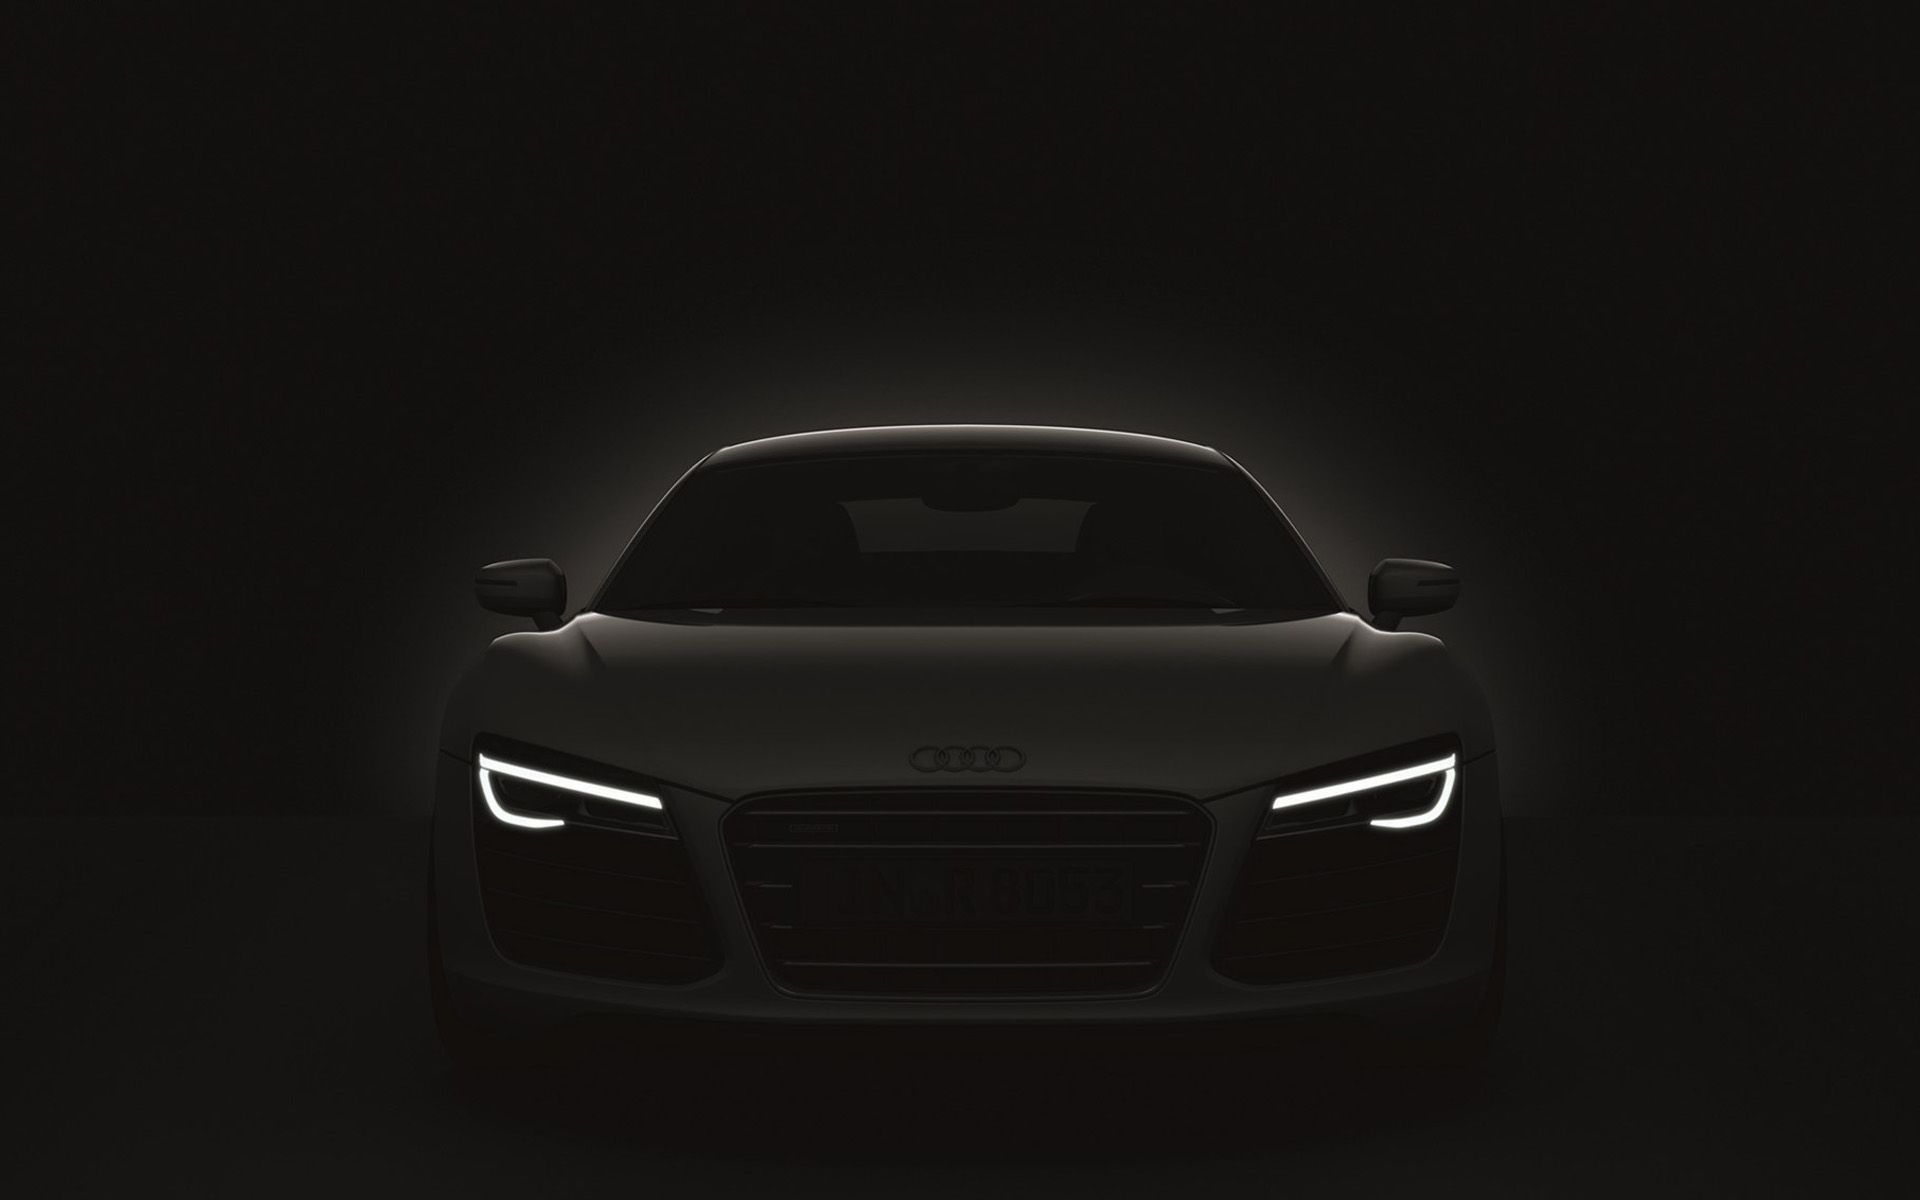 Audi R8 Desktop Wallpaper 34